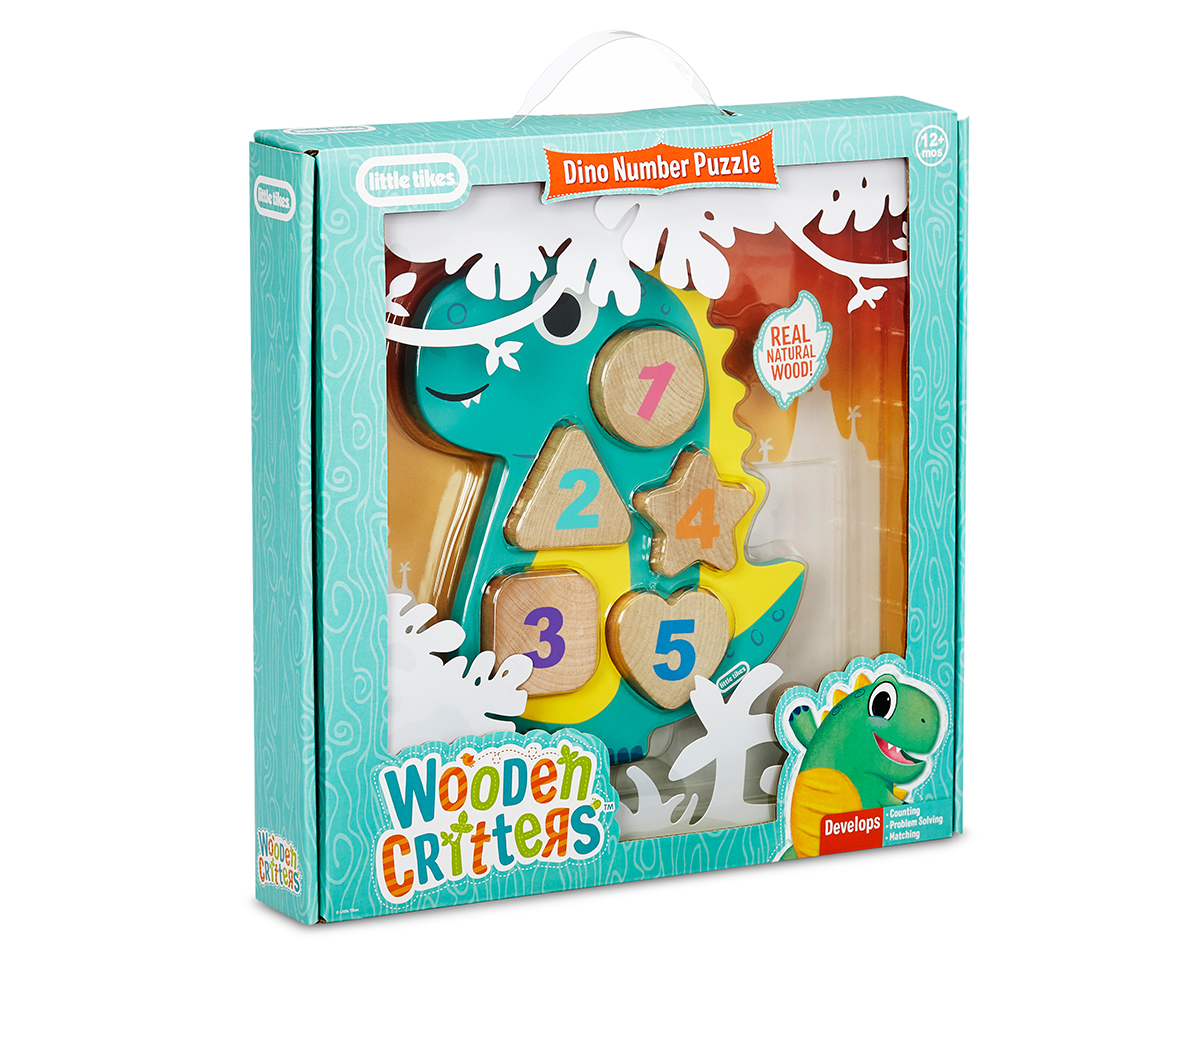 Wooden Critters Dino Number Puzzle